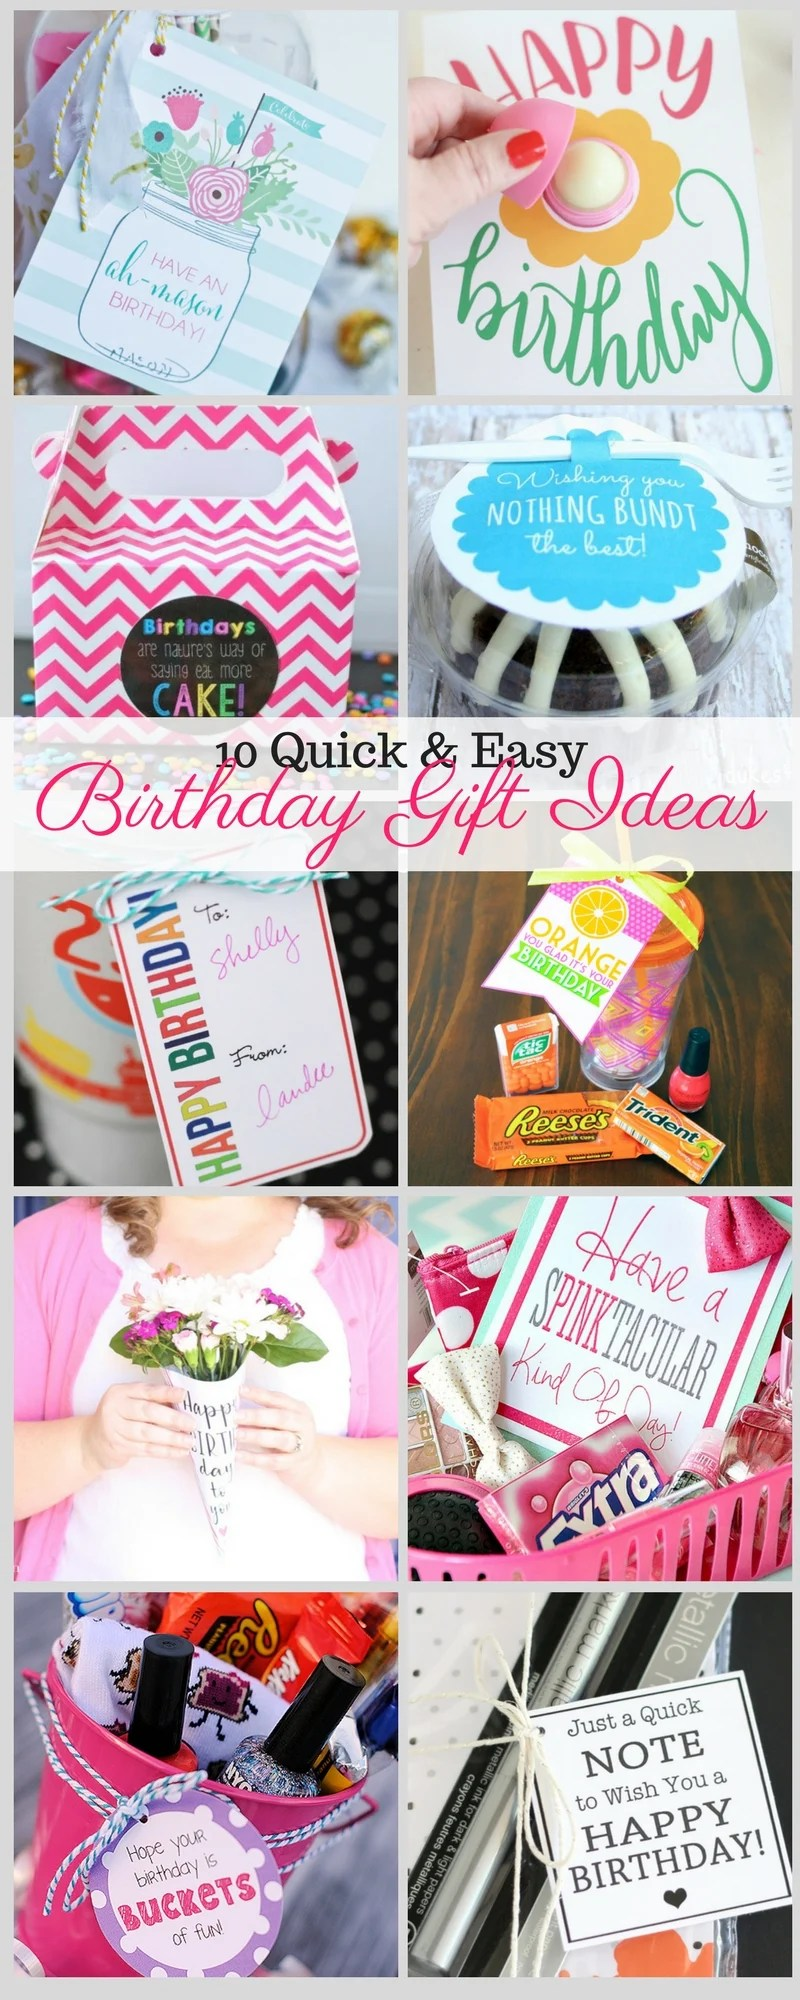 Especially When They Come With Free Printables In Continuing Our Birthday Theme This Week I Have Rounded Up 10 Quick And Easy Gift Ideas